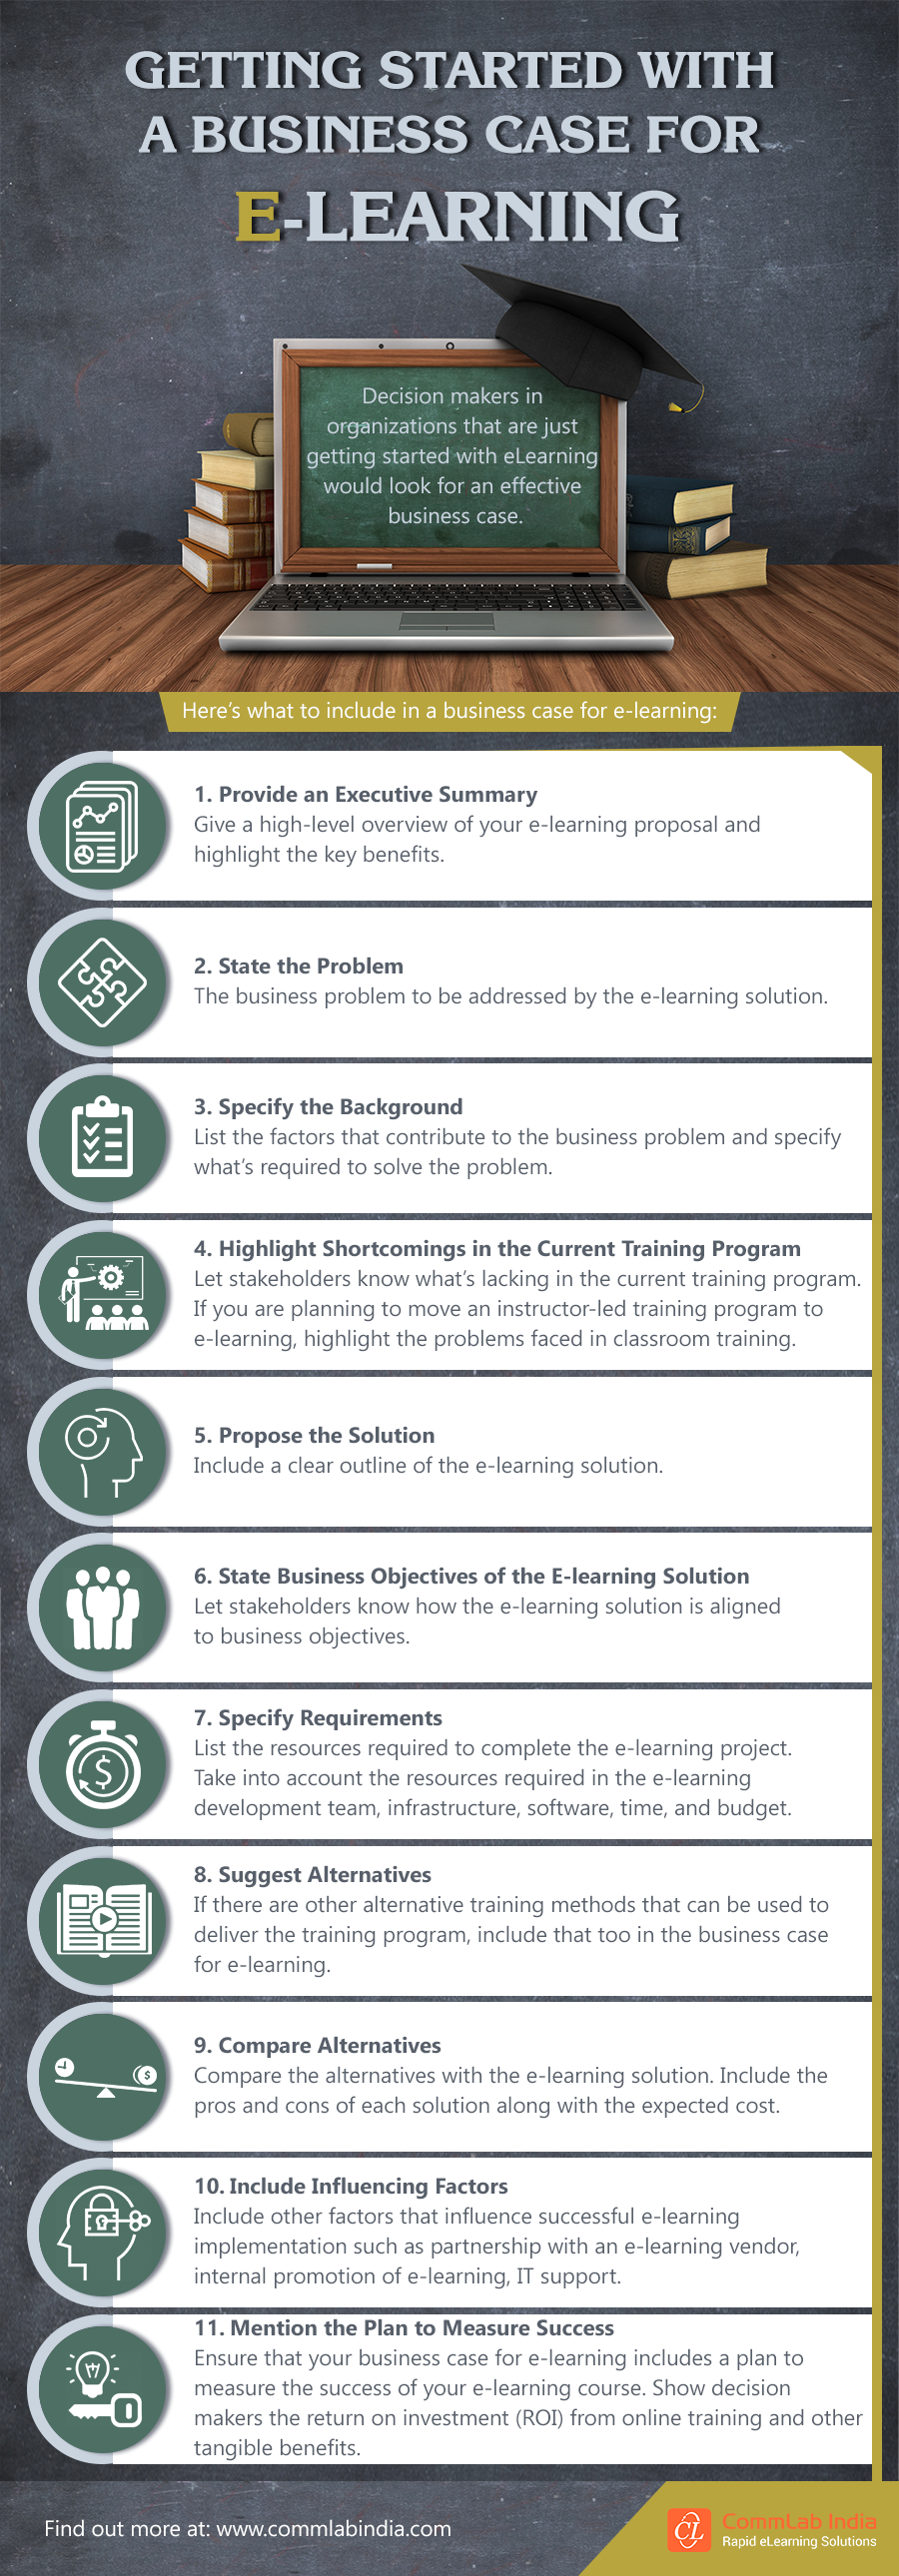 Getting Started with a Business Case for eLearning #infographic #Business Case #eLearning #eLearning course